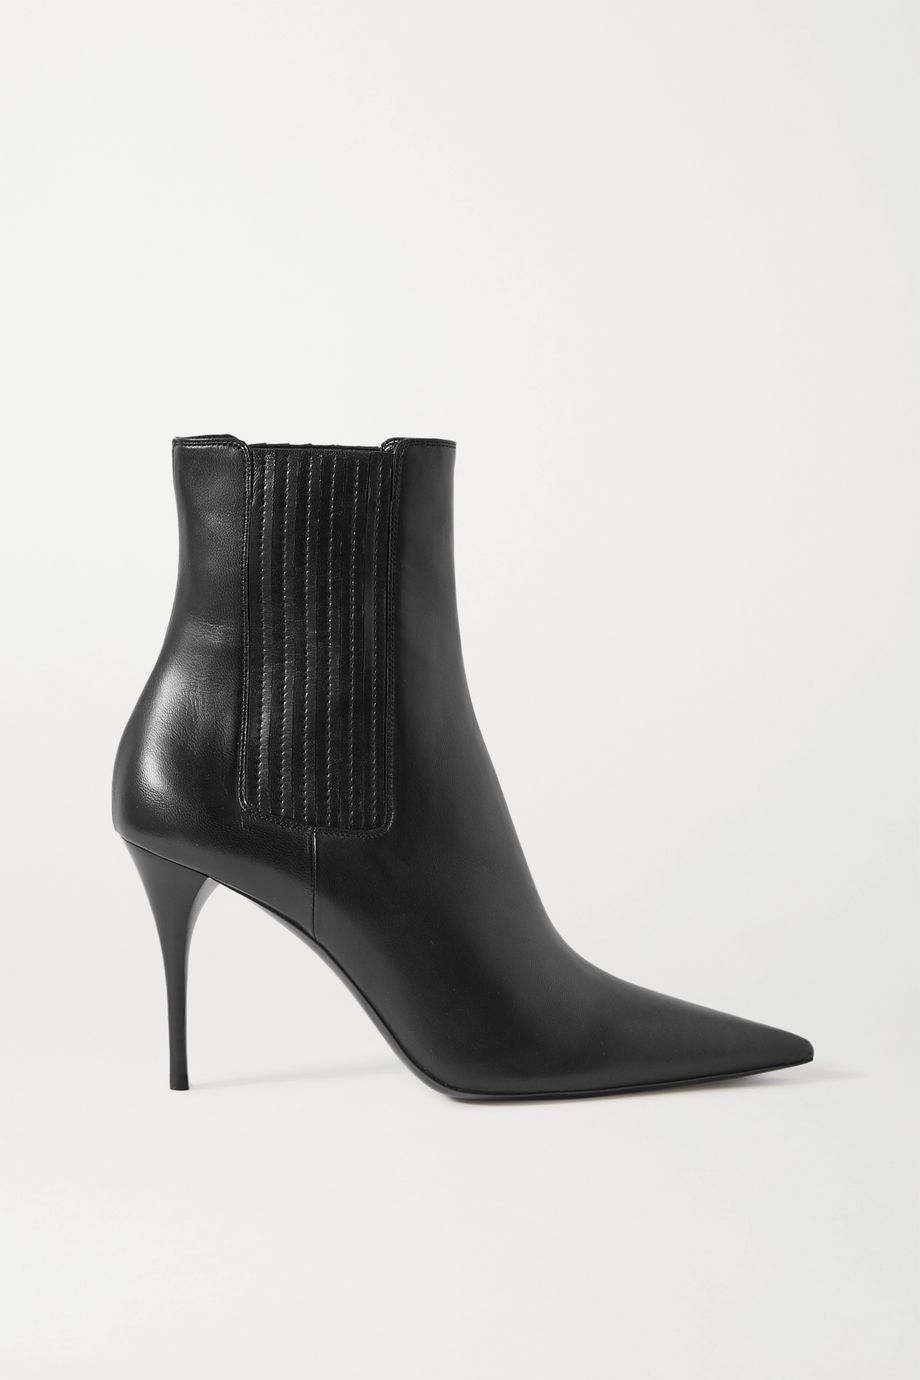 SAINT LAURENT Bottines en cuir Lexi